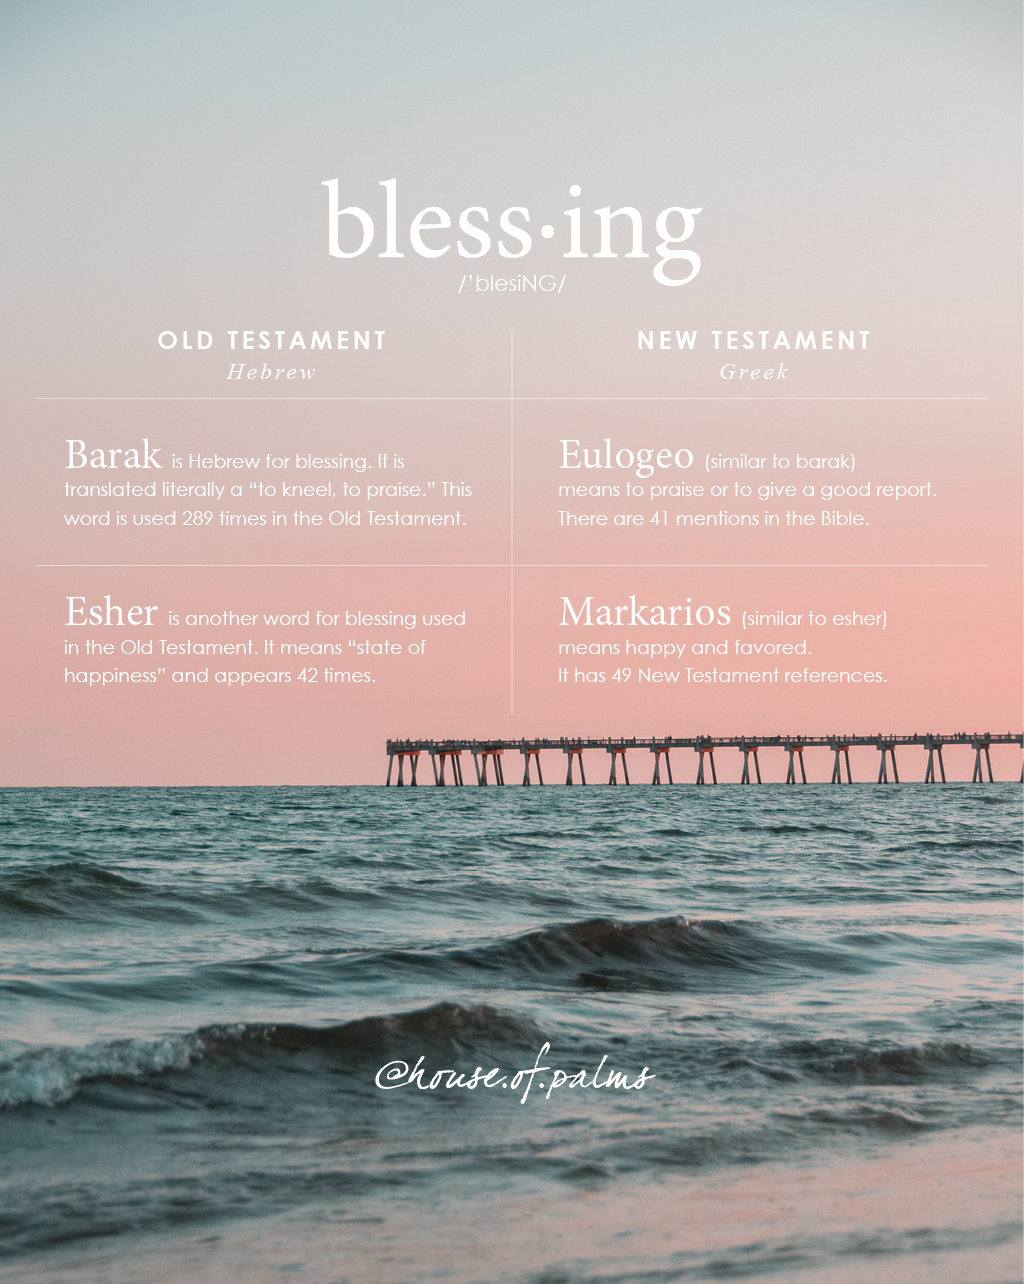 blessing definition and Hebrew and Greek meanings.jpg